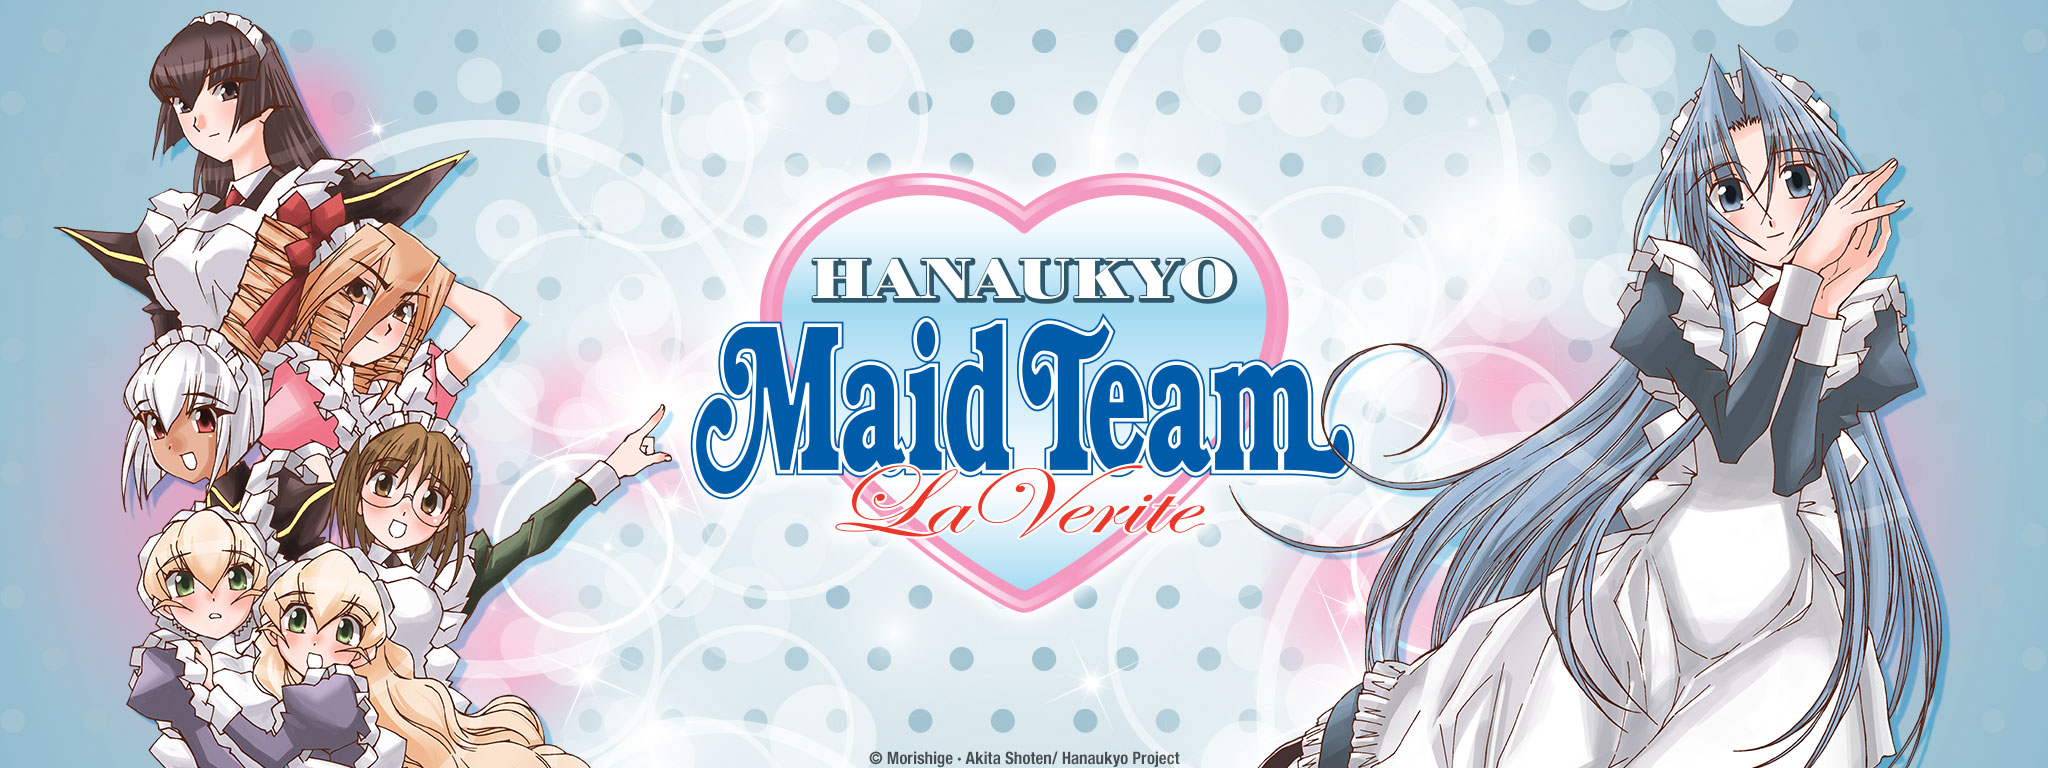 Hanaukyo Maid Team: La Verite